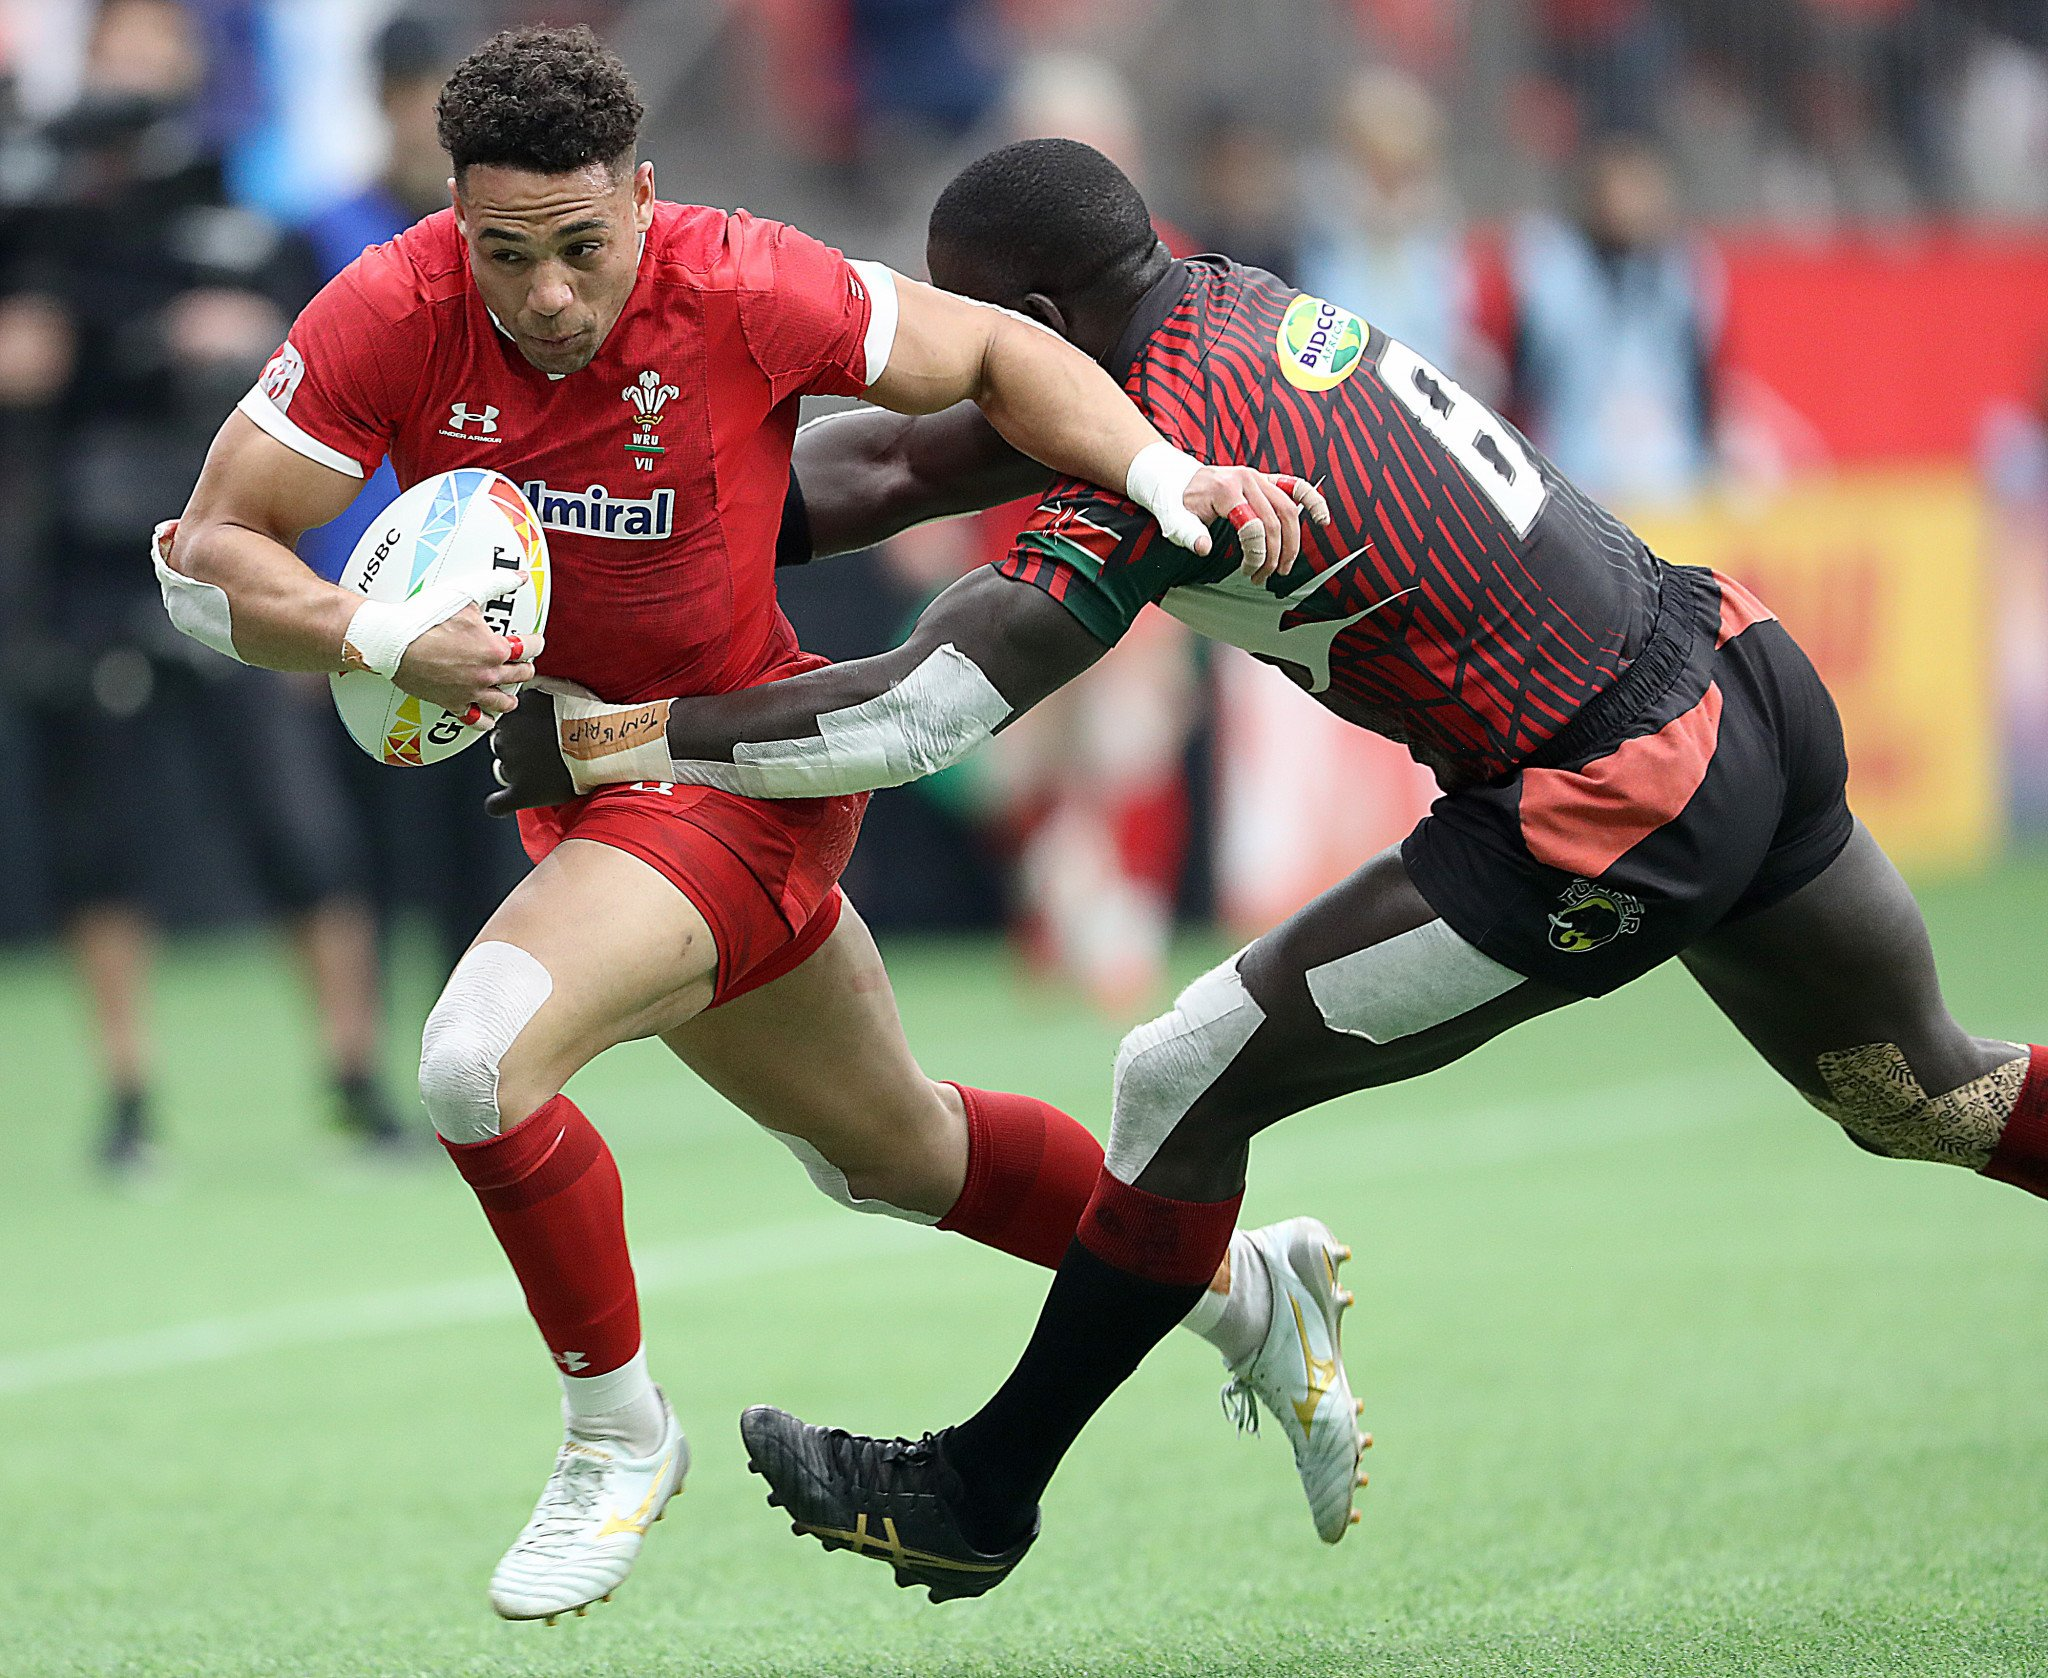 Wales rugby sevens programme ceases operations due to coronavirus crisis